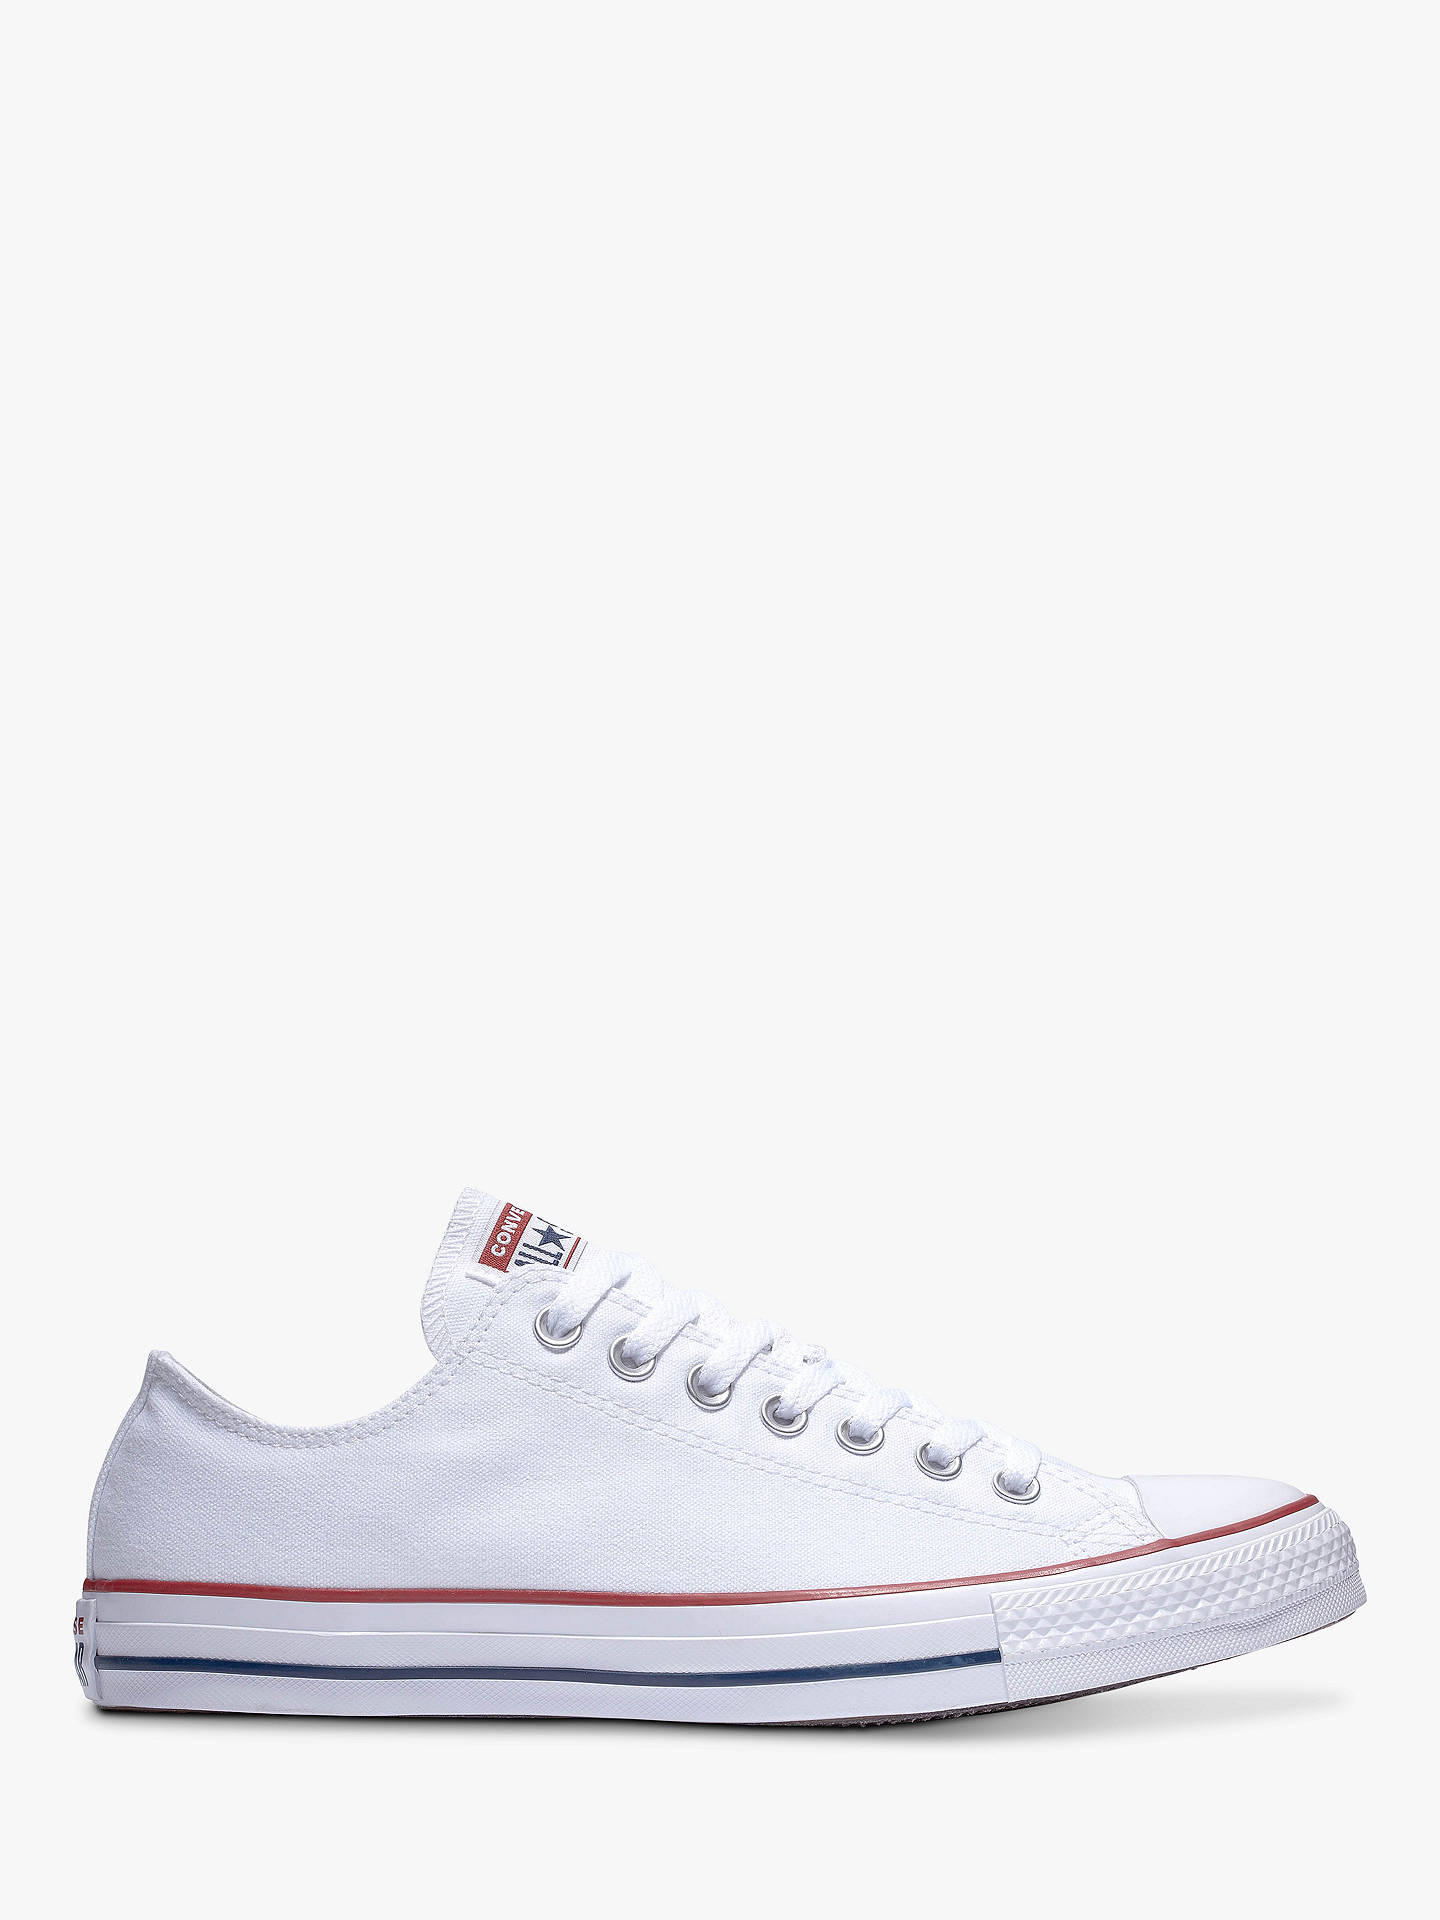 Converse Chuck Taylor All Star Canvas Ox Niedrig Top Top Niedrig Trainers at John ... f87773